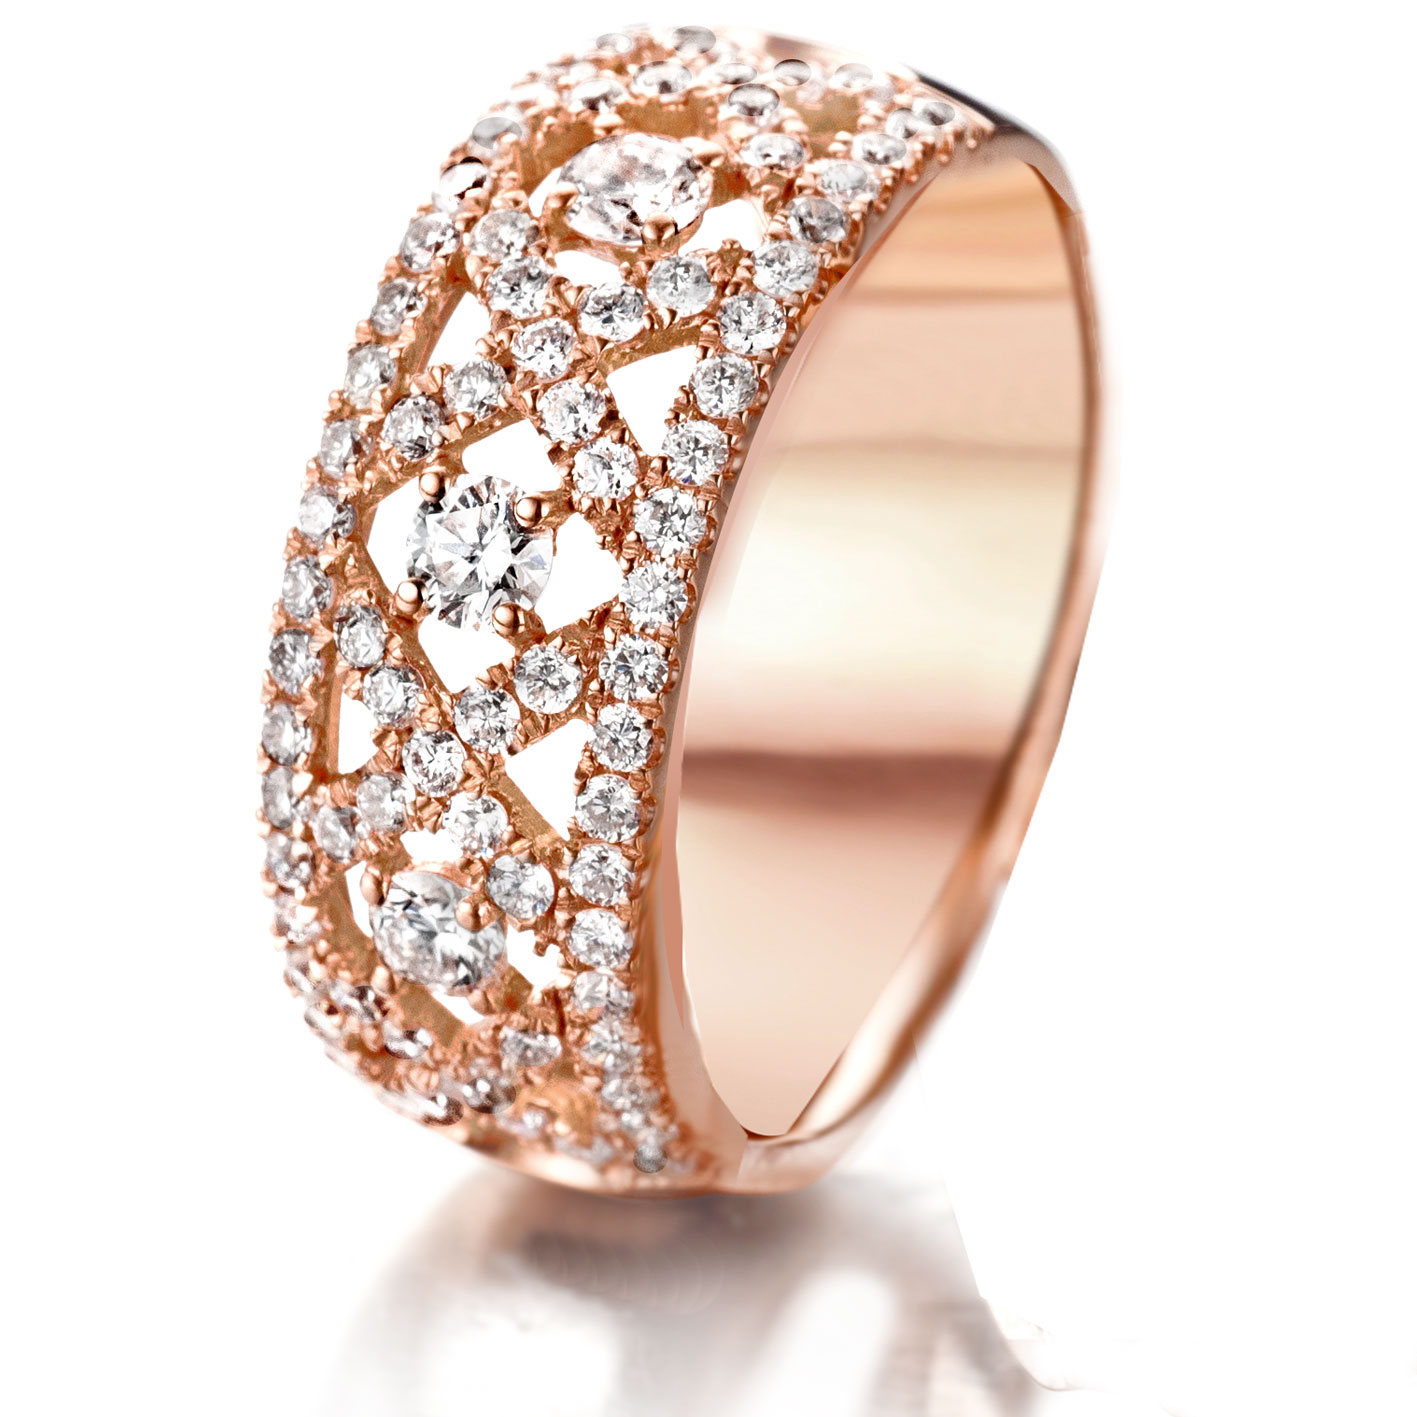 Très Bague diamant en or rose 0.9 ct - 53190 - PX55